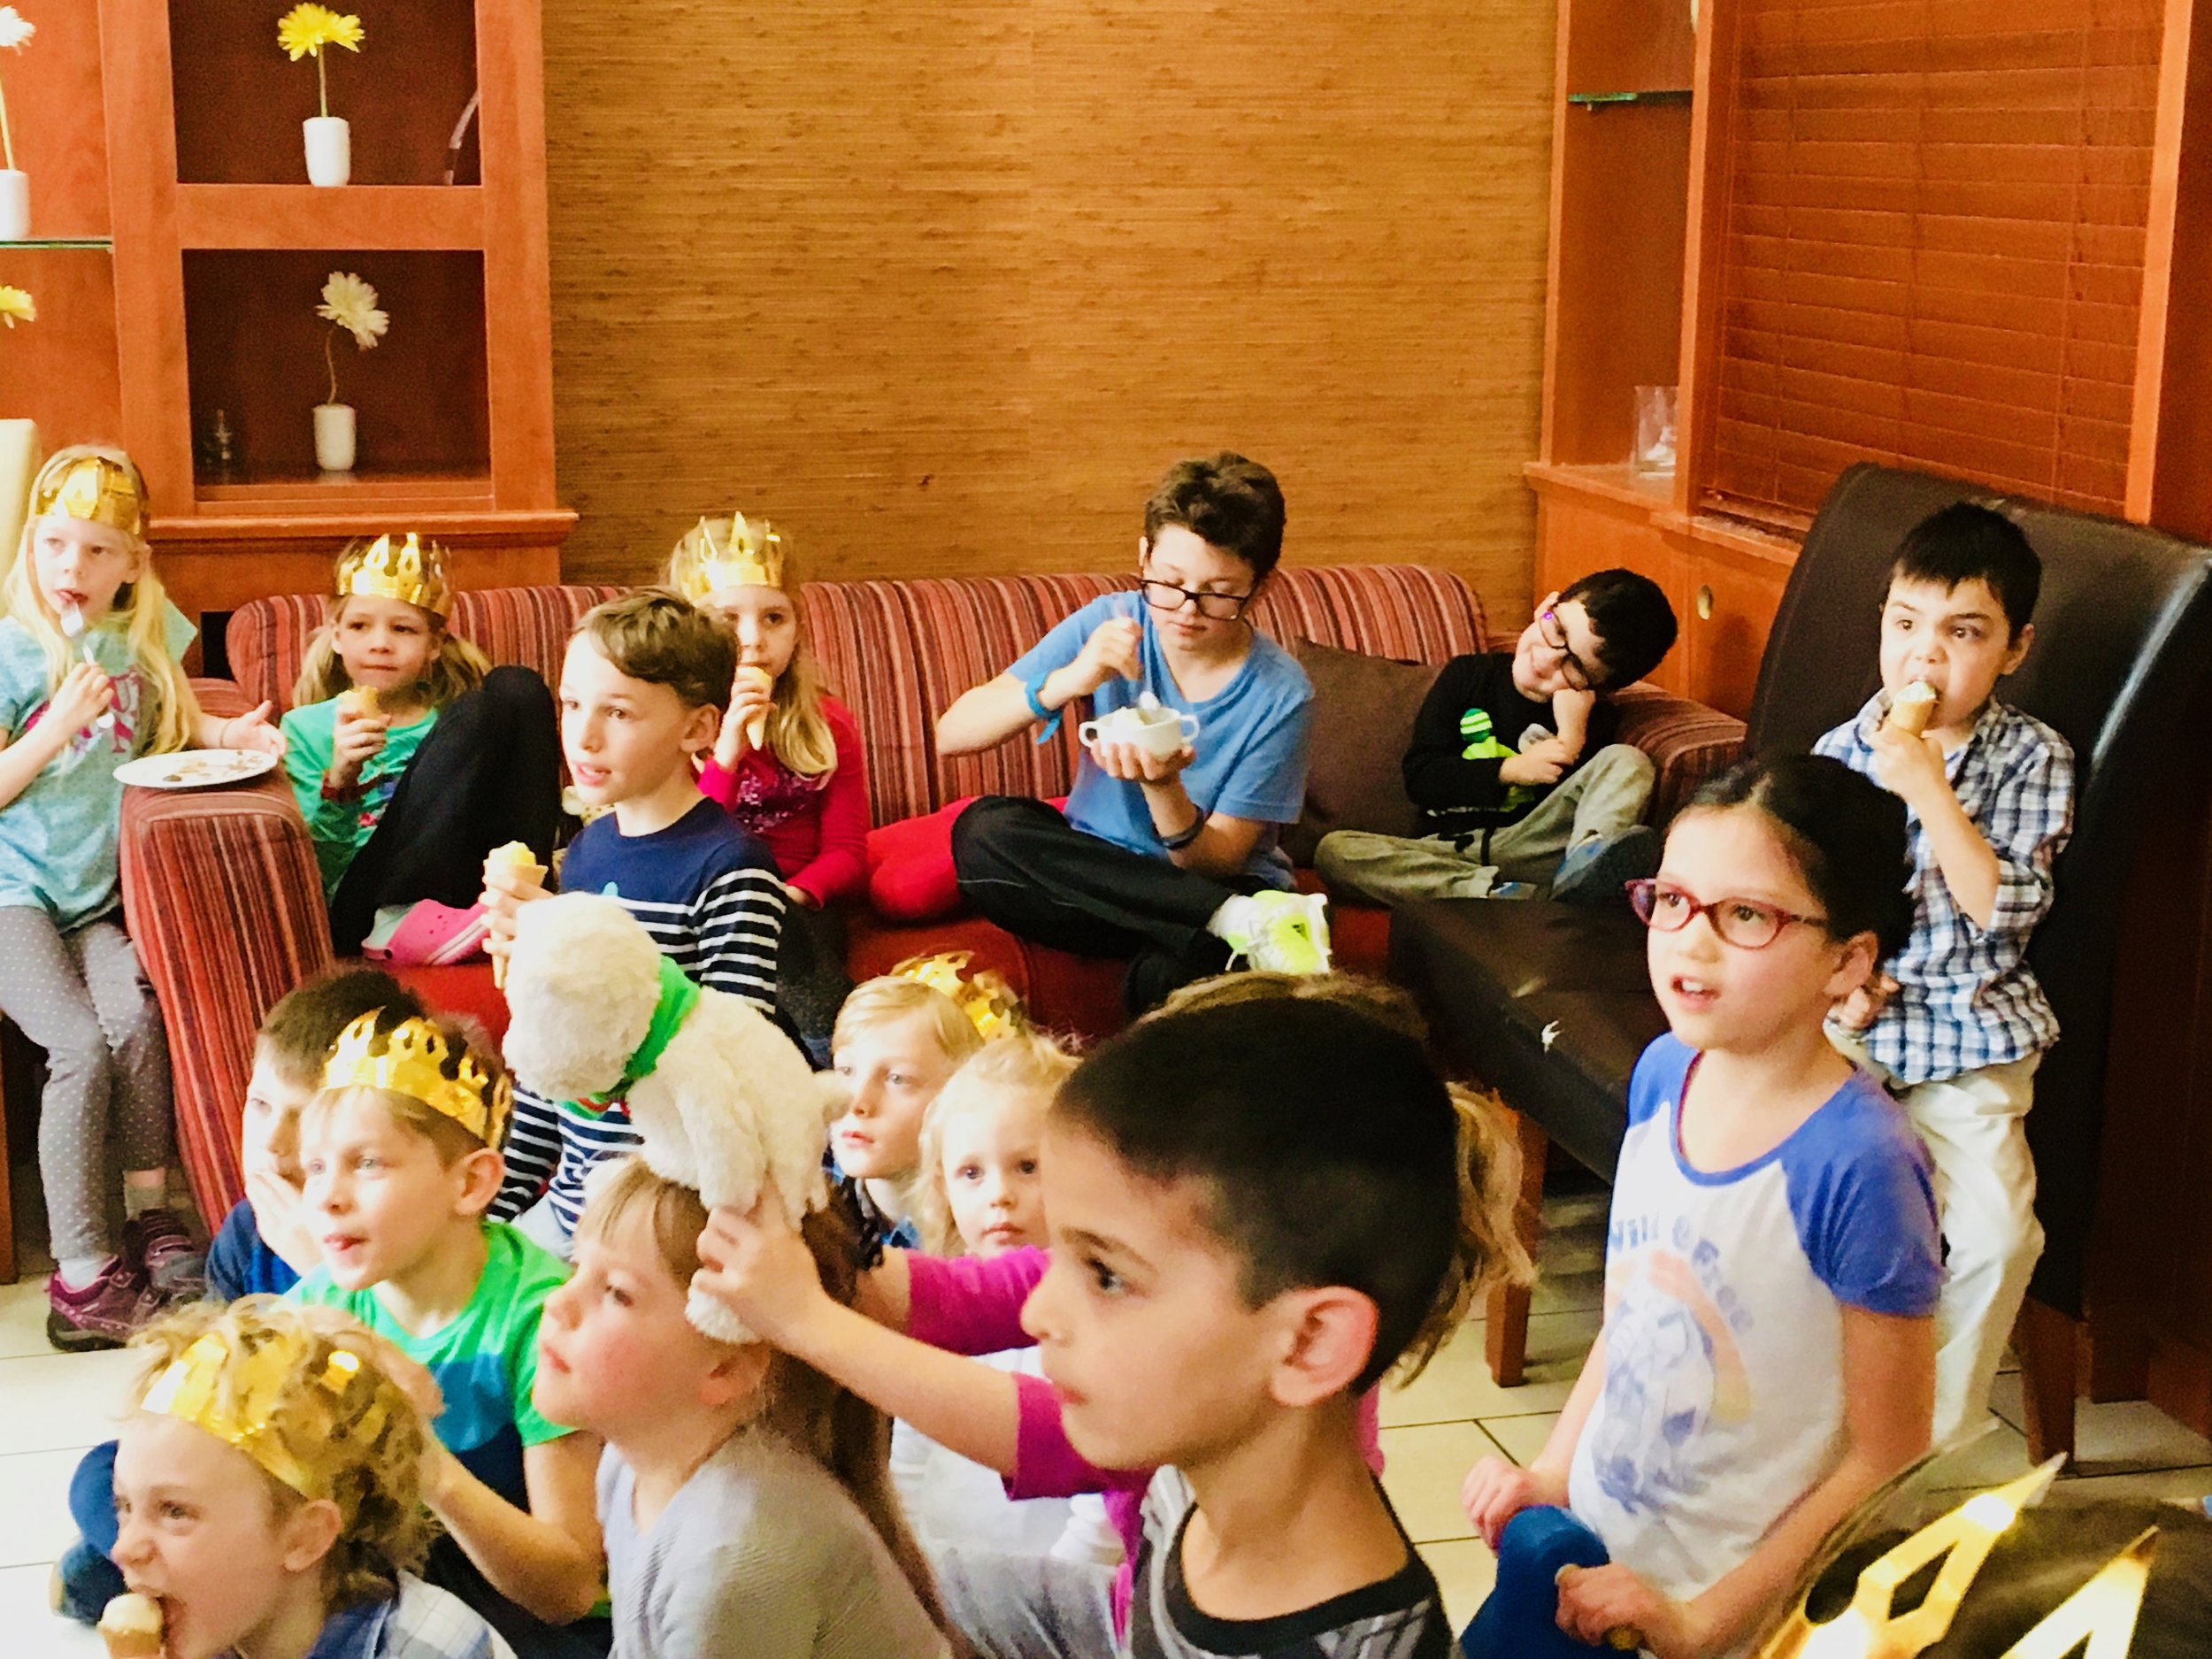 Share is a great opportunity to learn how to do family ministry, and the TCKs (Third Culture Kids) get to spend time with kids just like them, and ask their teachers difficult questions.